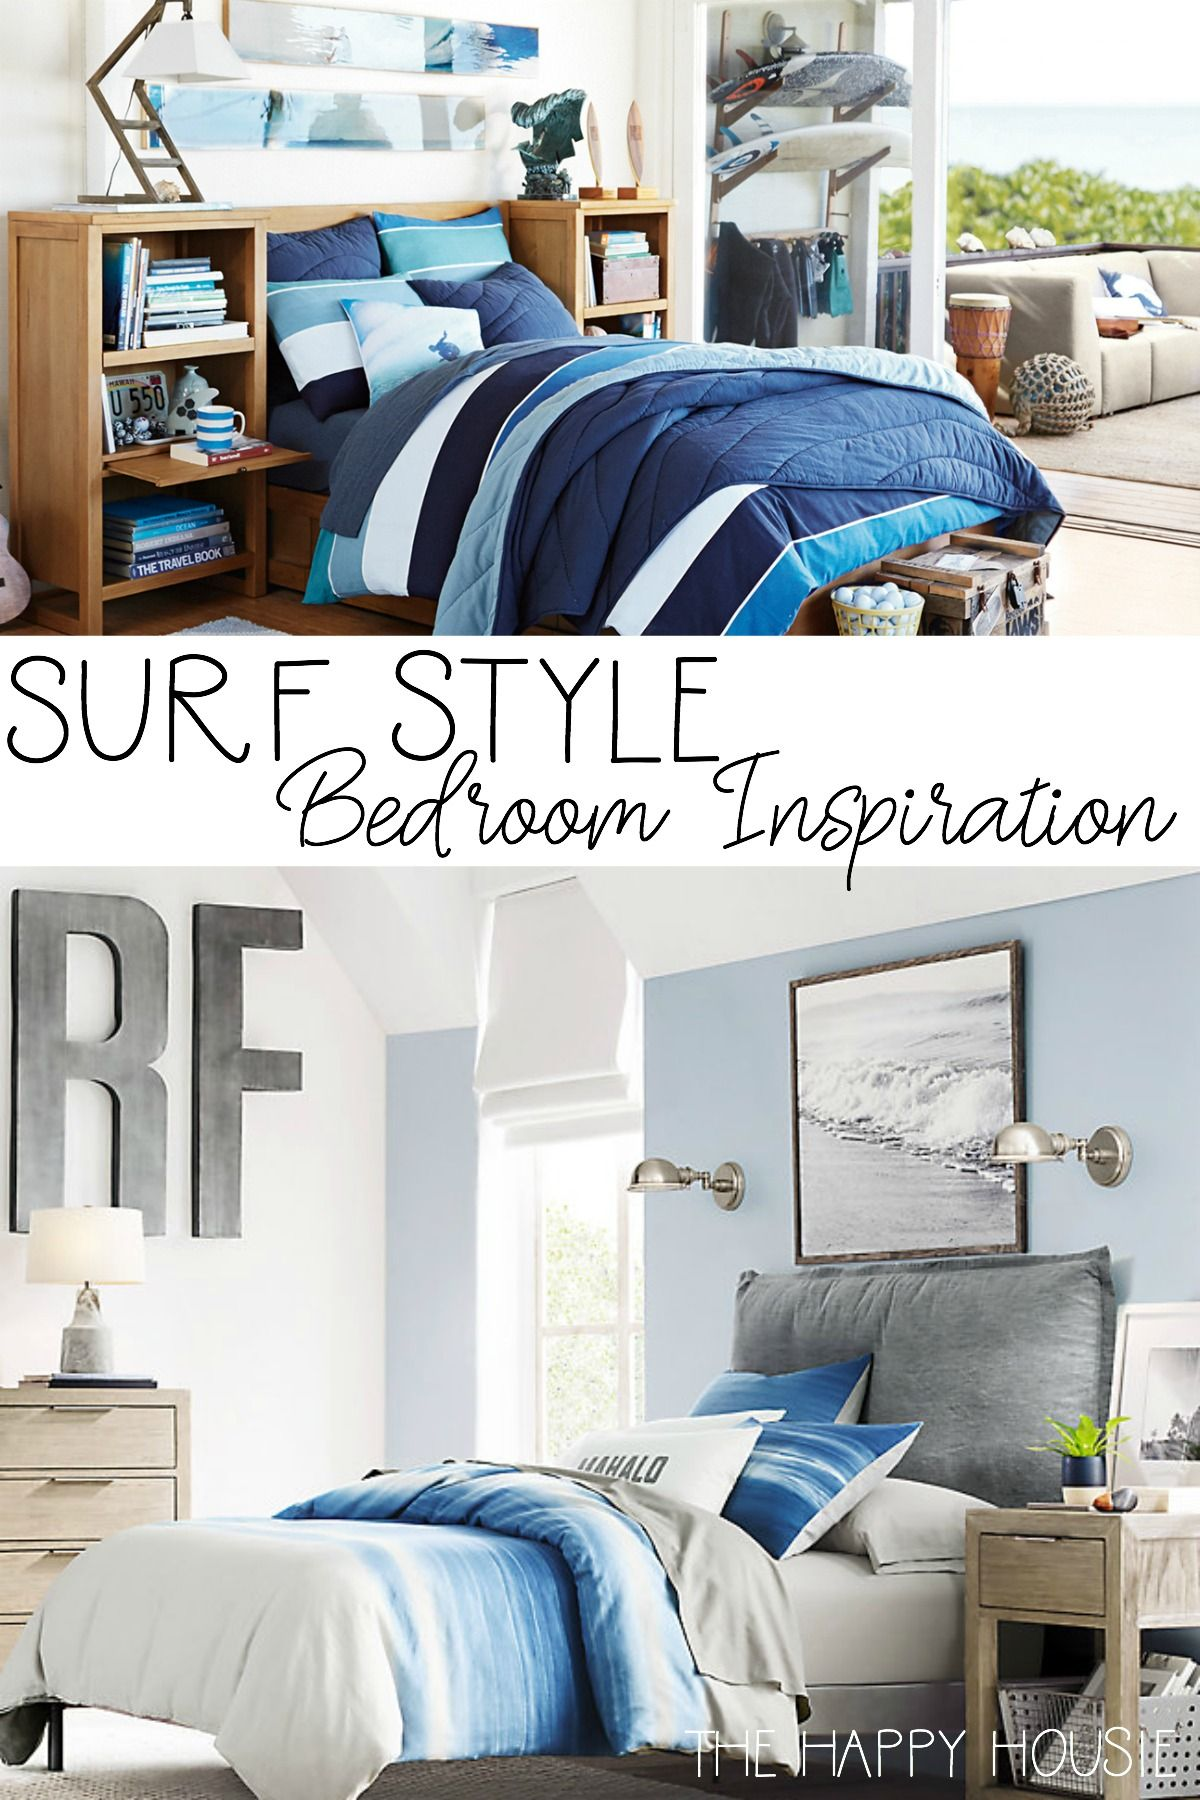 surf style bedroom inspiration for the home bedroom bedroom rh pinterest com  surf shack style bedroom